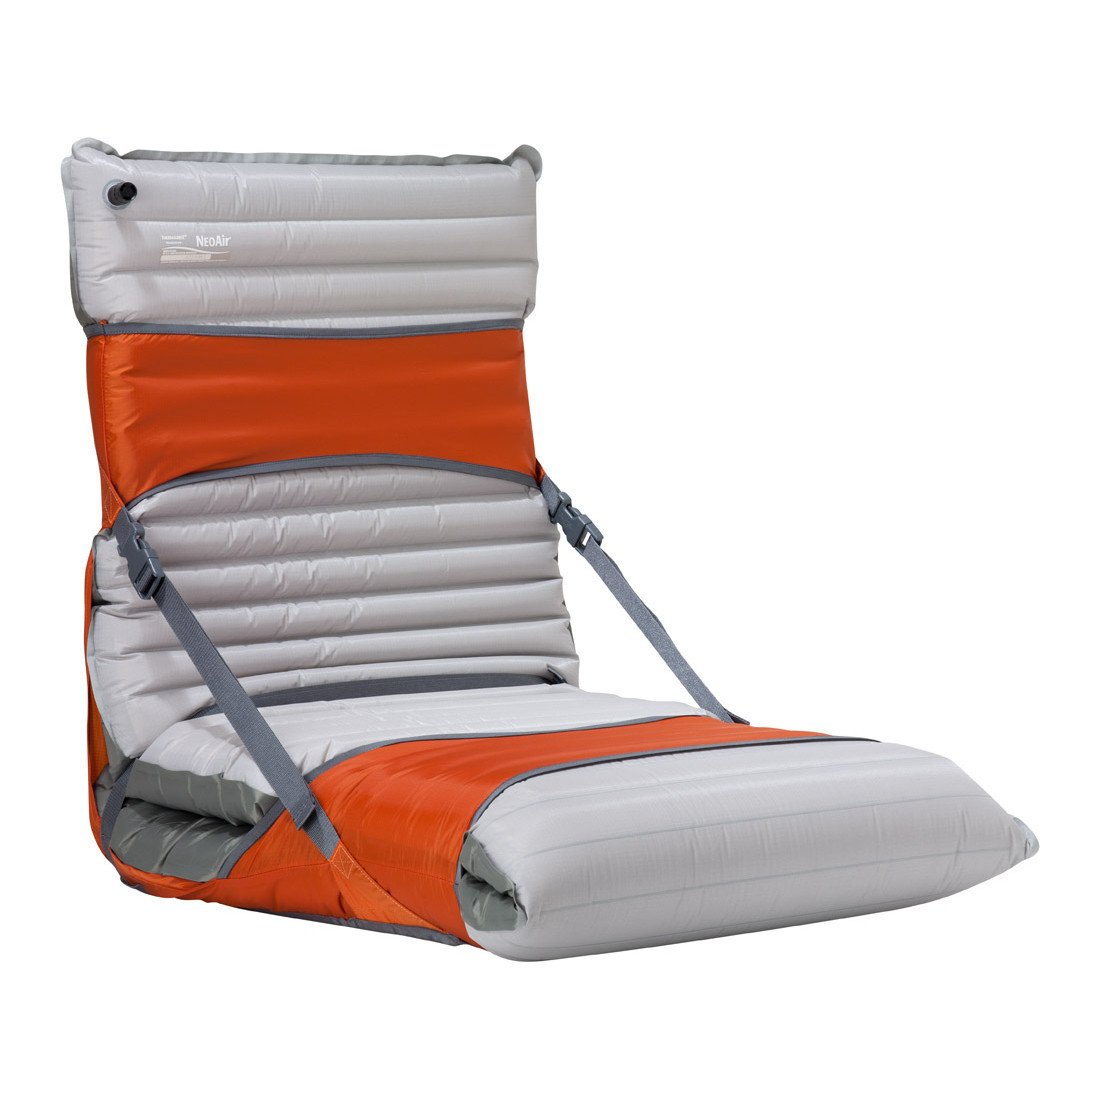 Thermarest Trekker Chair Kit 20, shown with grey mat, in orange colour